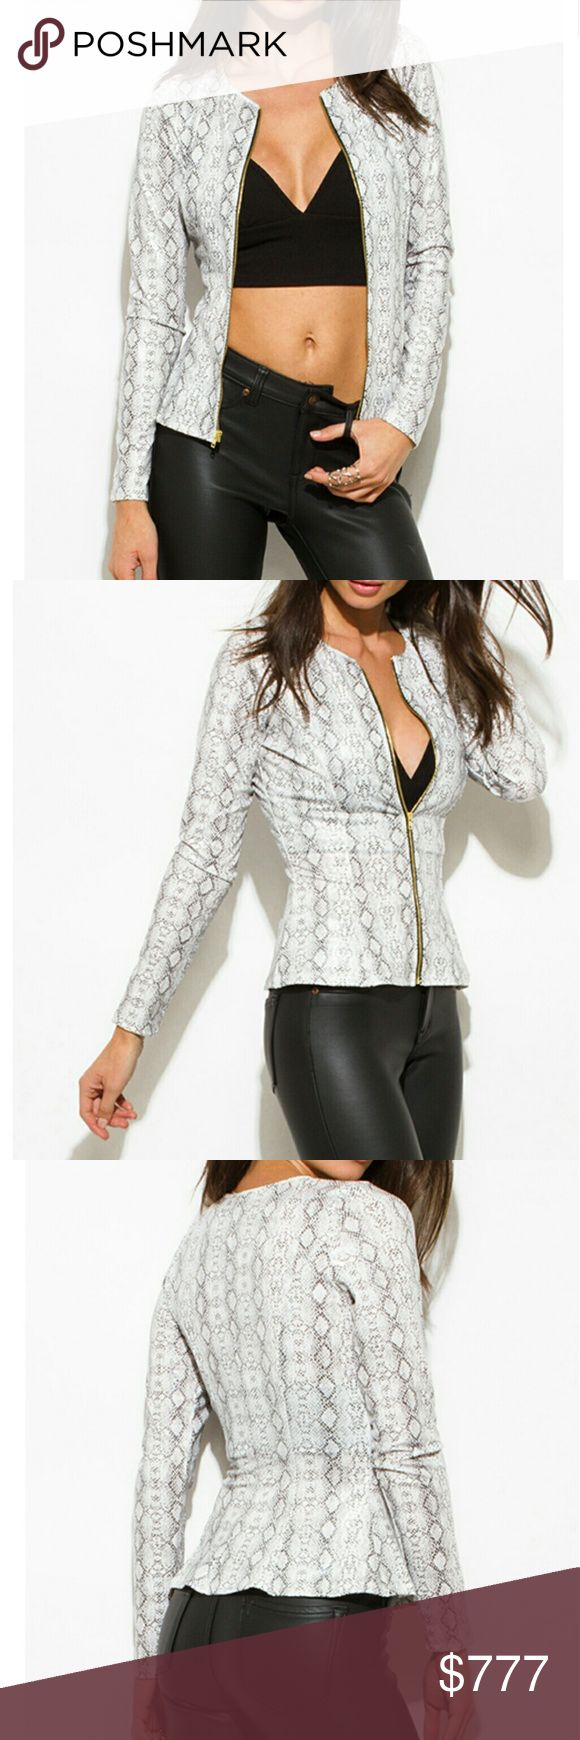 💋LAST 1💋PYTHON PRINT JACKET Brand new no tags Boutique item Price is firm  This instantly stylish python print jacket is trendy Timeless and sophisticated. It features a fitted and structured bodice. Exposed zipper on front makes it fun to wear, zip up all the way for work and ZIP down halfway for happy hour. Wear it with skinny jeans or a pencil skirt.   Material is semi stretchy 96% polyester 4% spandex light weight made in the USA  Modeling is wearing a size small   Jacket animal print…